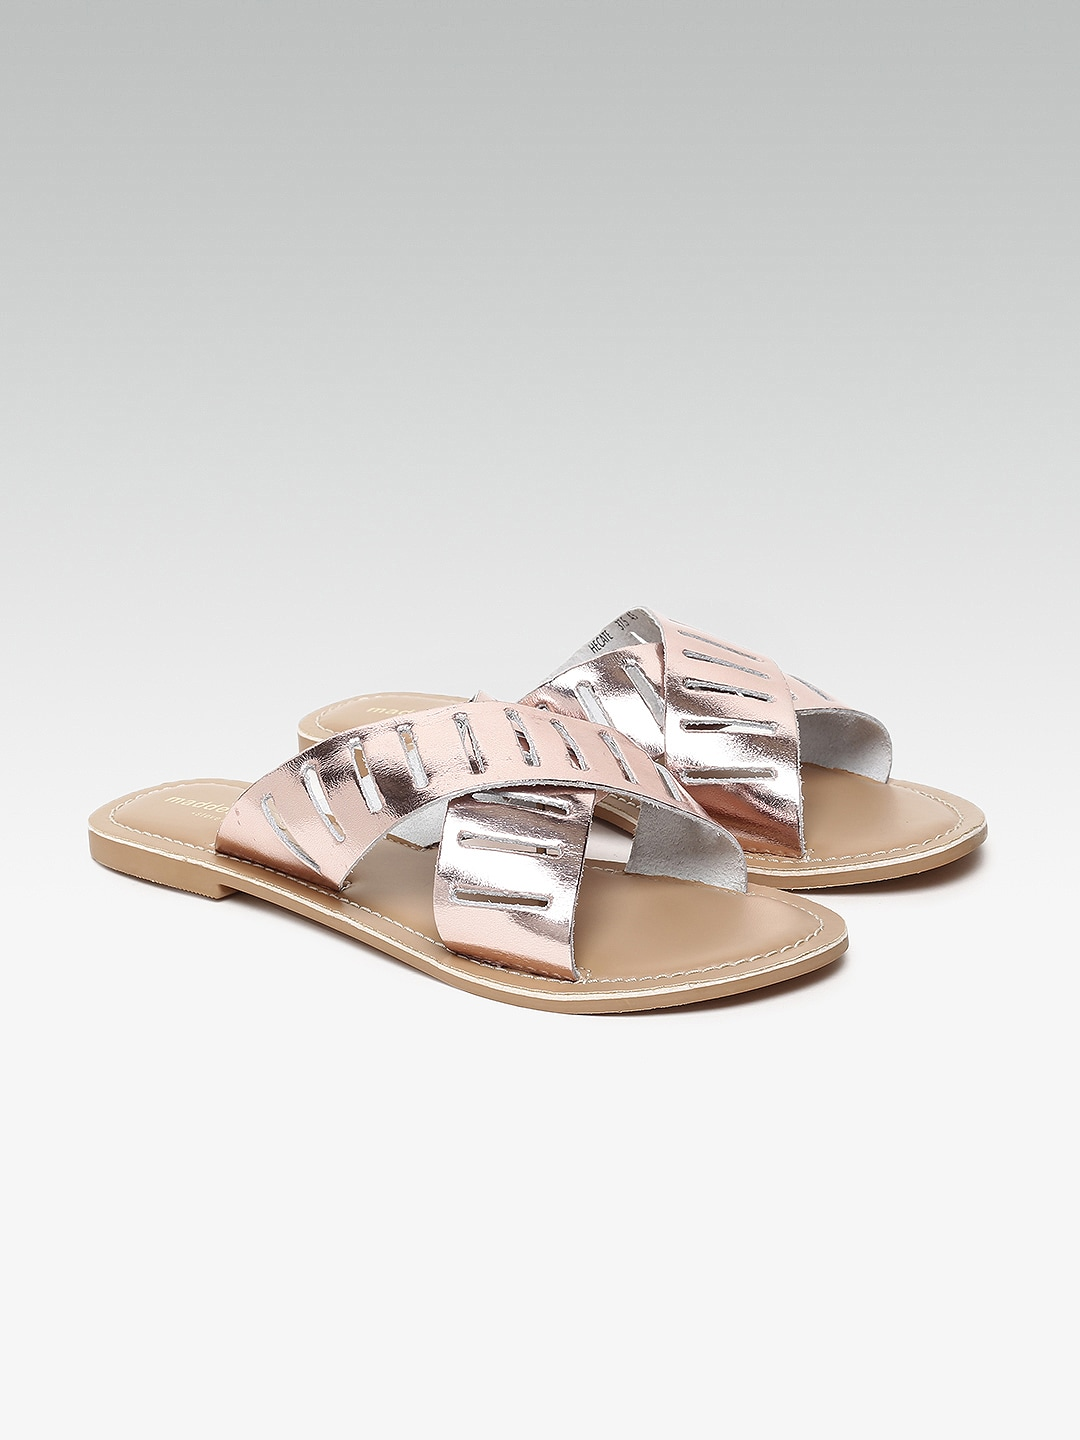 2a3e1ec99 Steve Madden - Buy Steve Madden Products Online In India